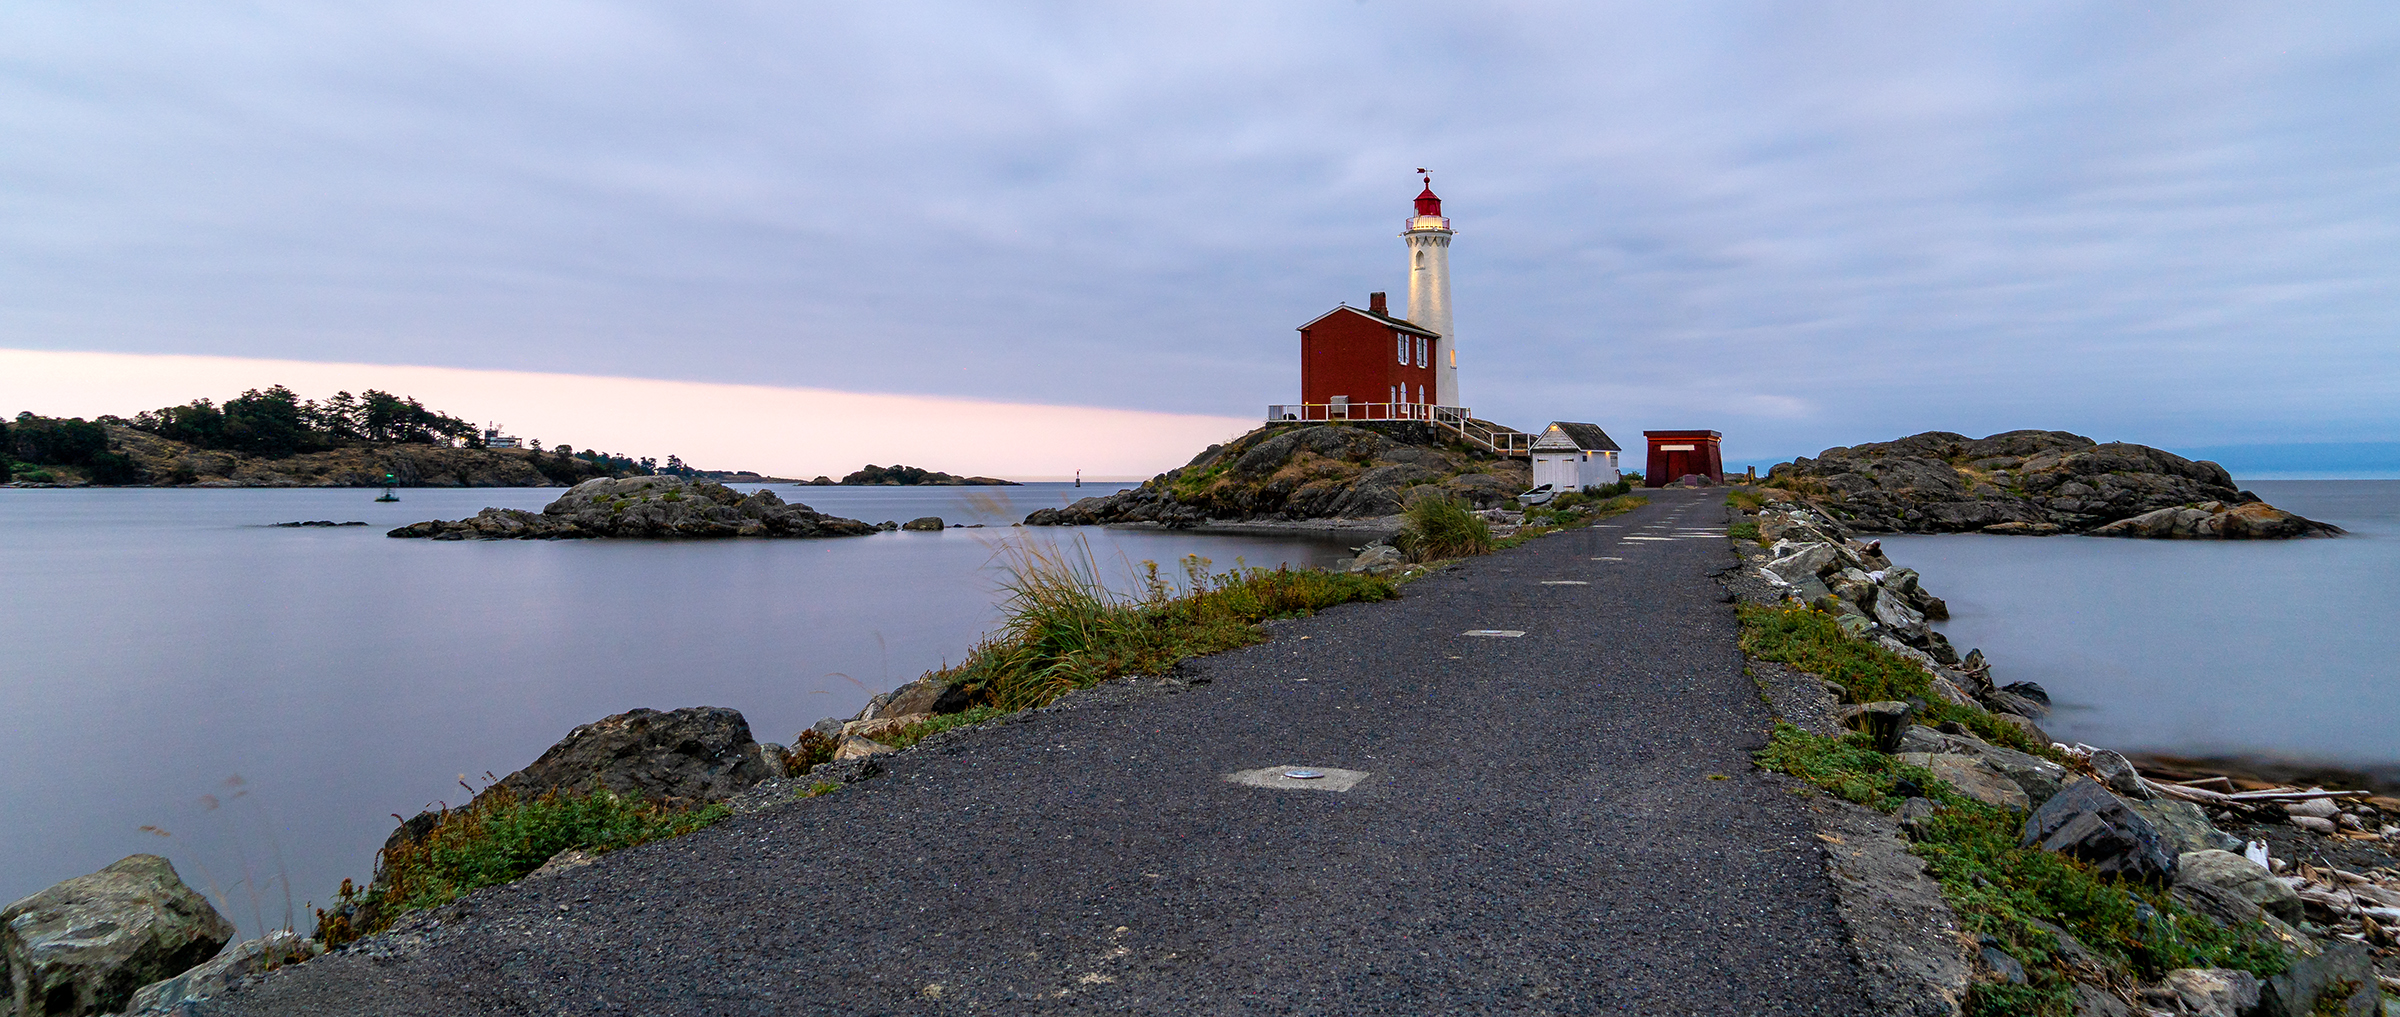 The Fisgard Lighthouse at Fort Rodd Hill